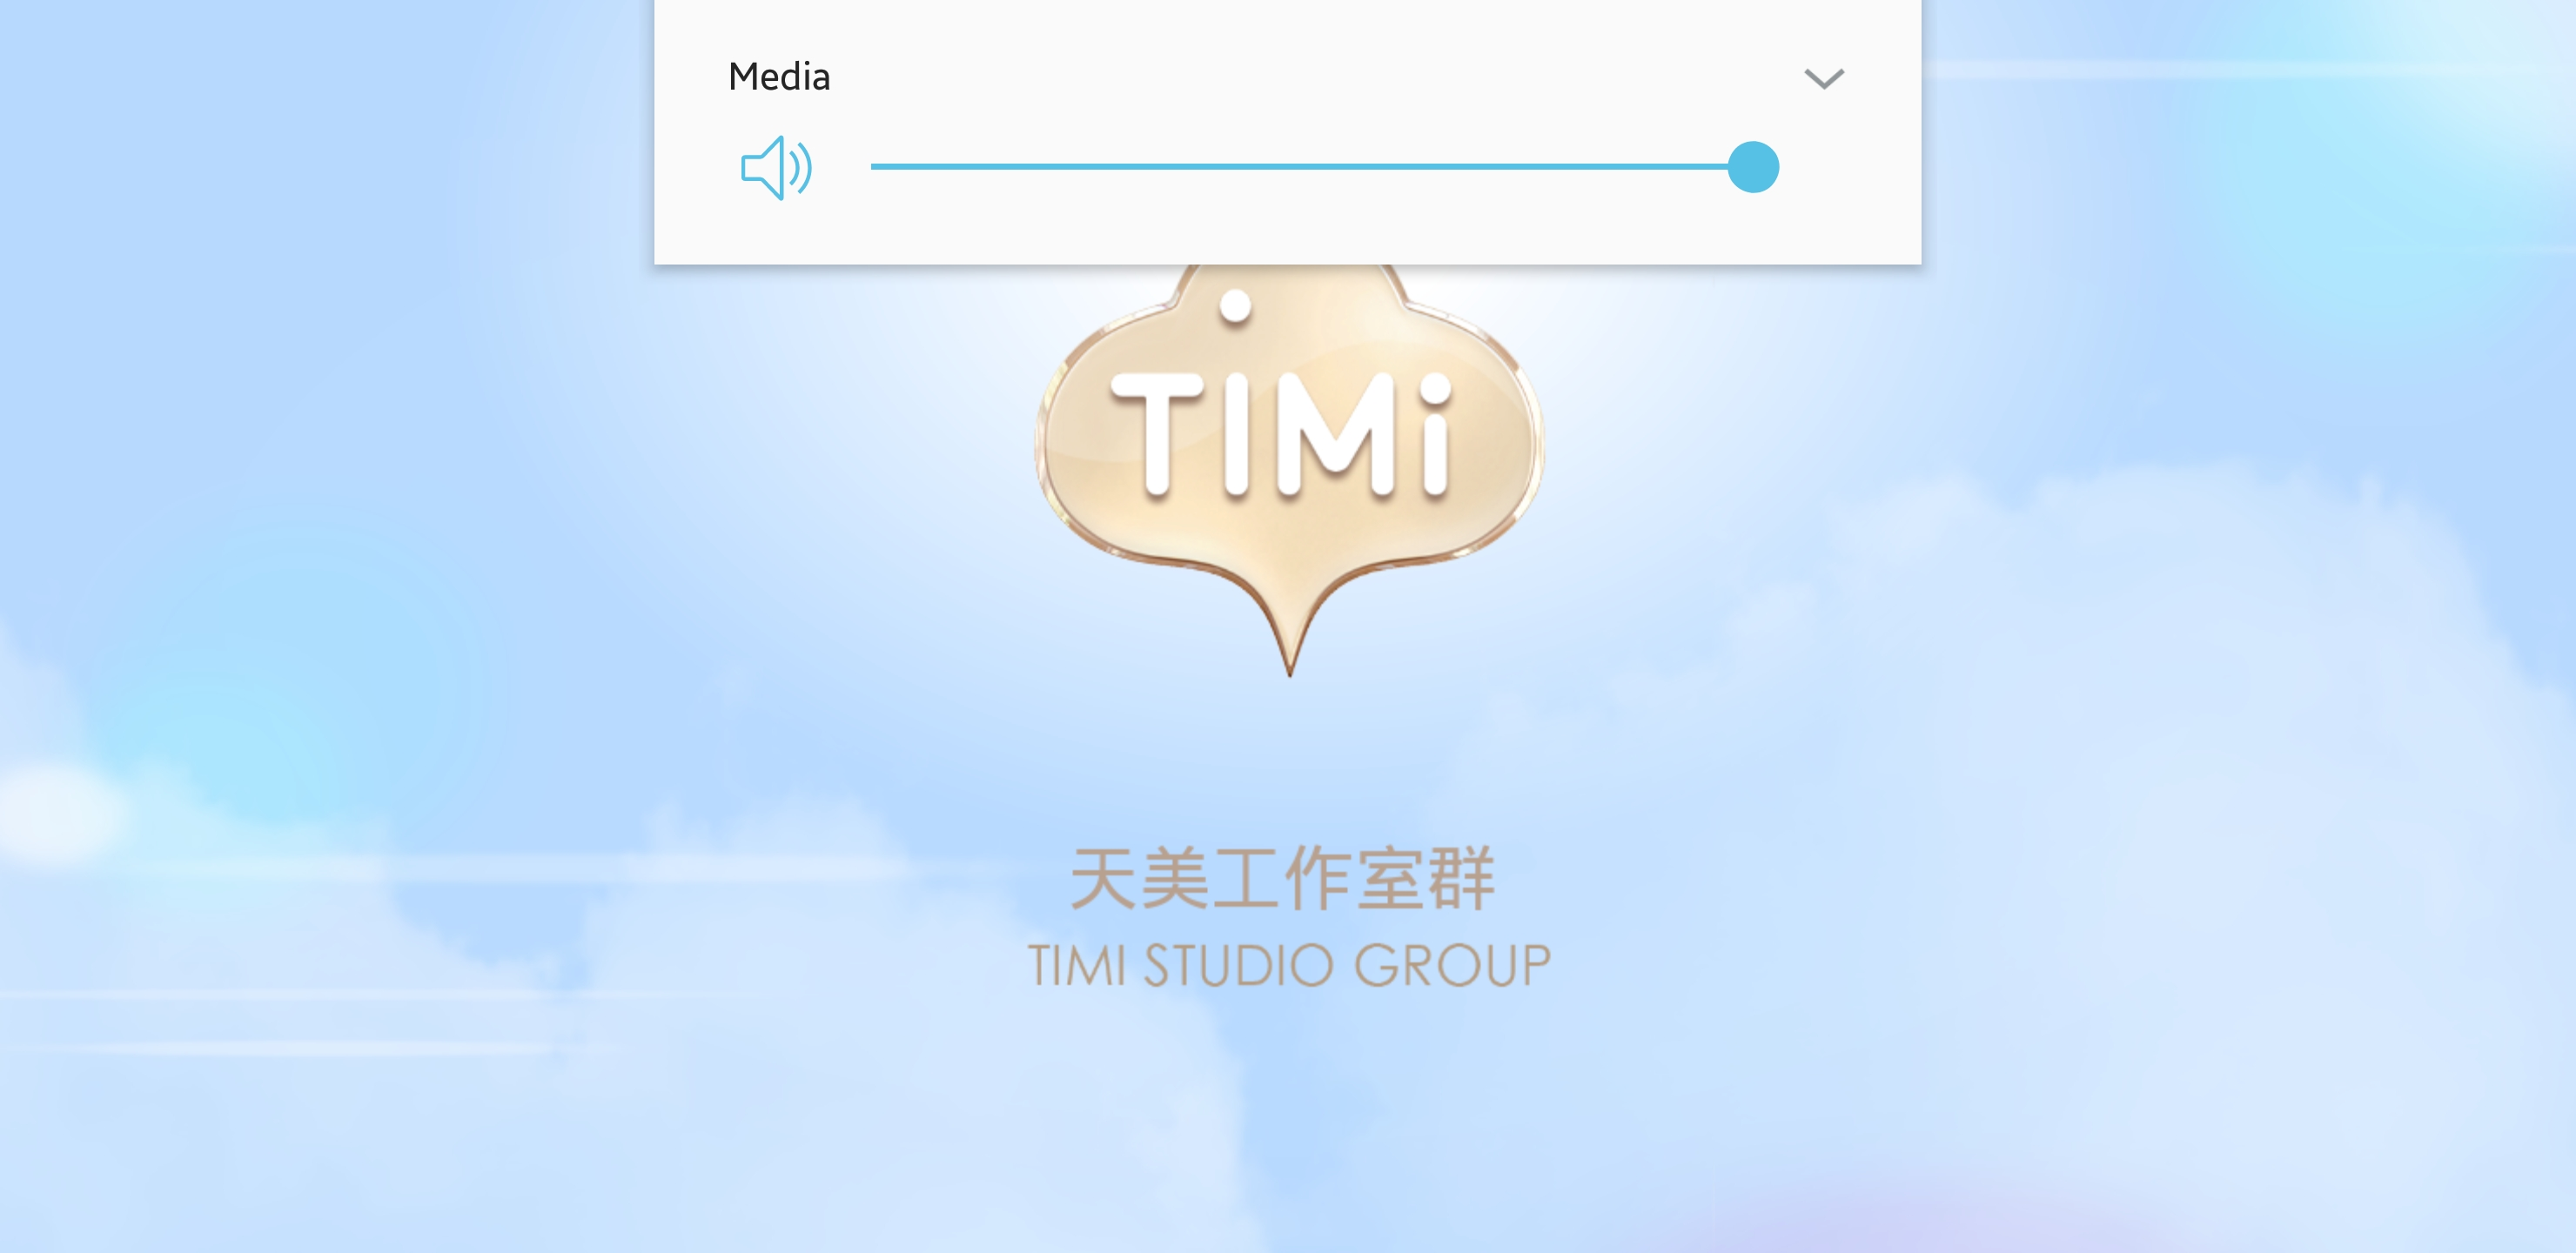 Download PUBG Mobile Timi Apk v1 0 6 3 0, with Miramar map